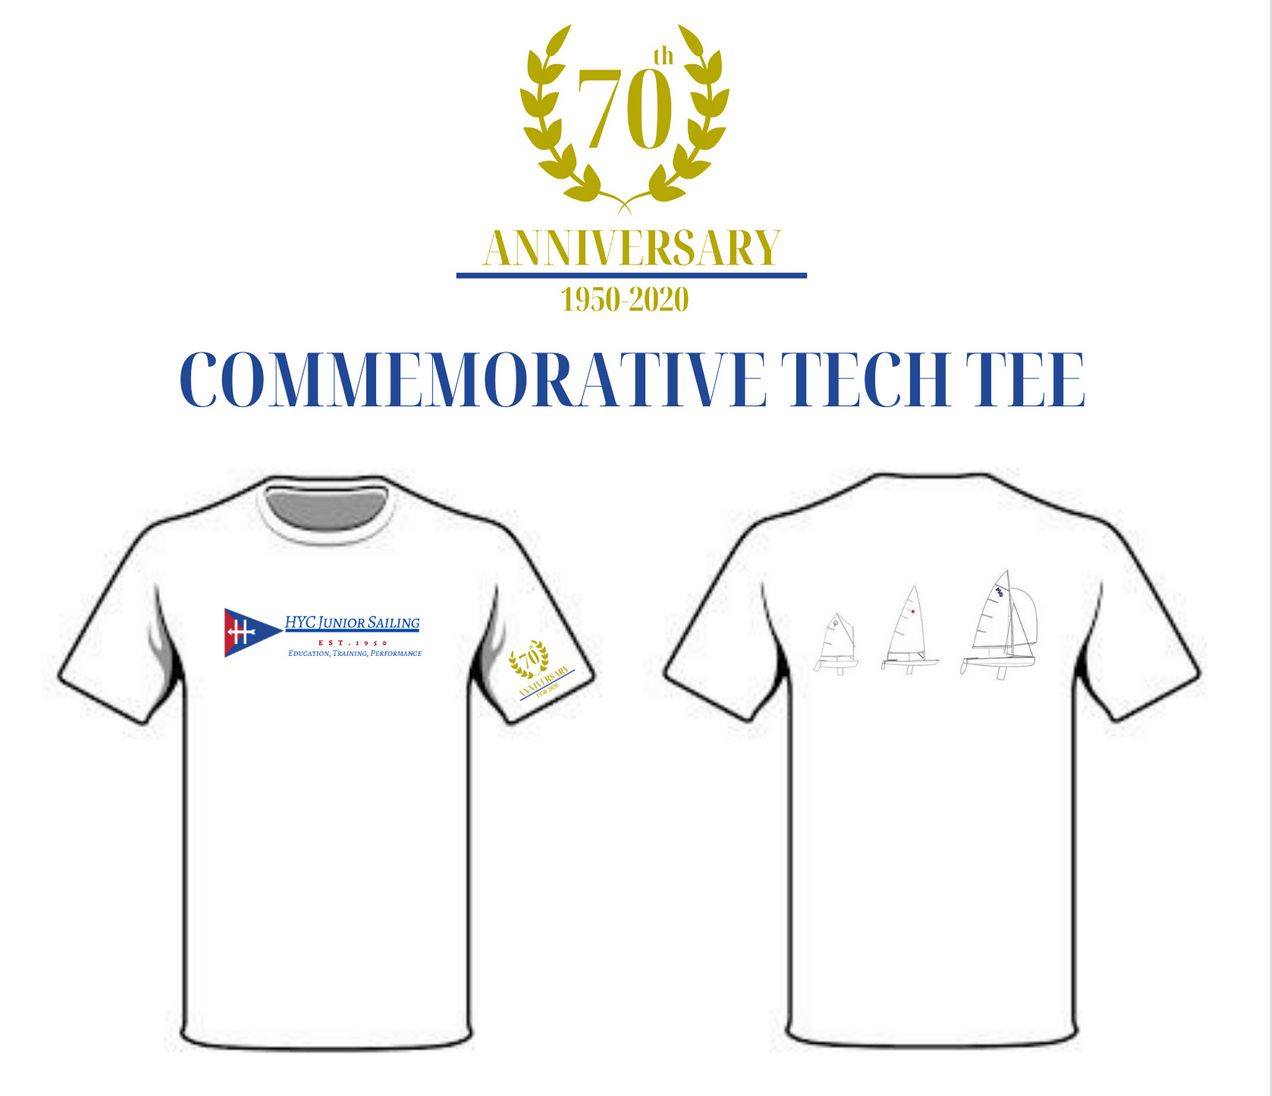 70th Anniversary Shirts